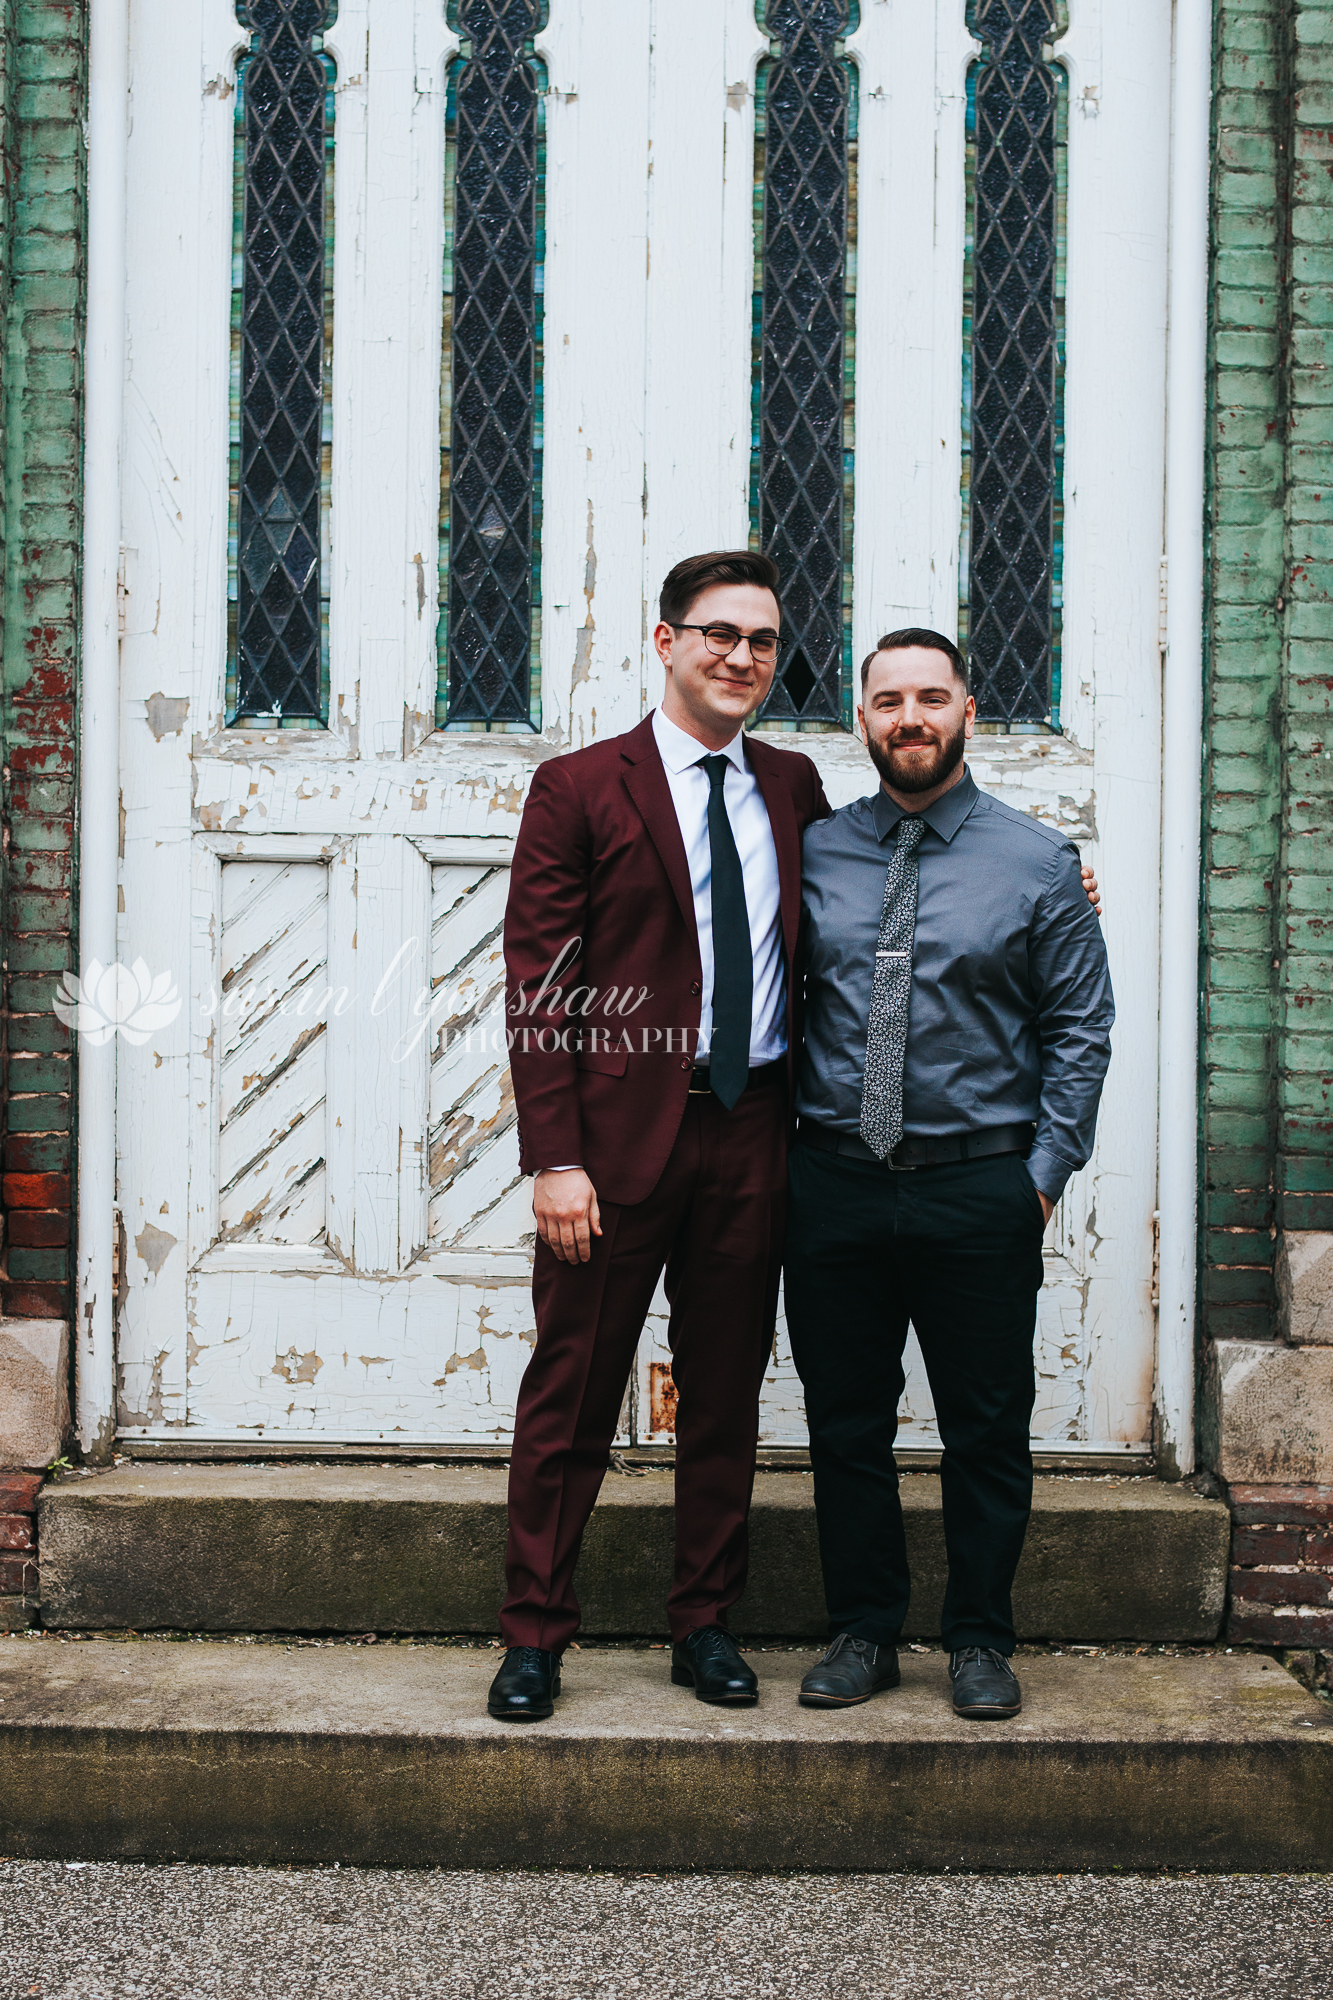 Chynna and John Wedding 05-18-2019 SLY Photography-33.jpg